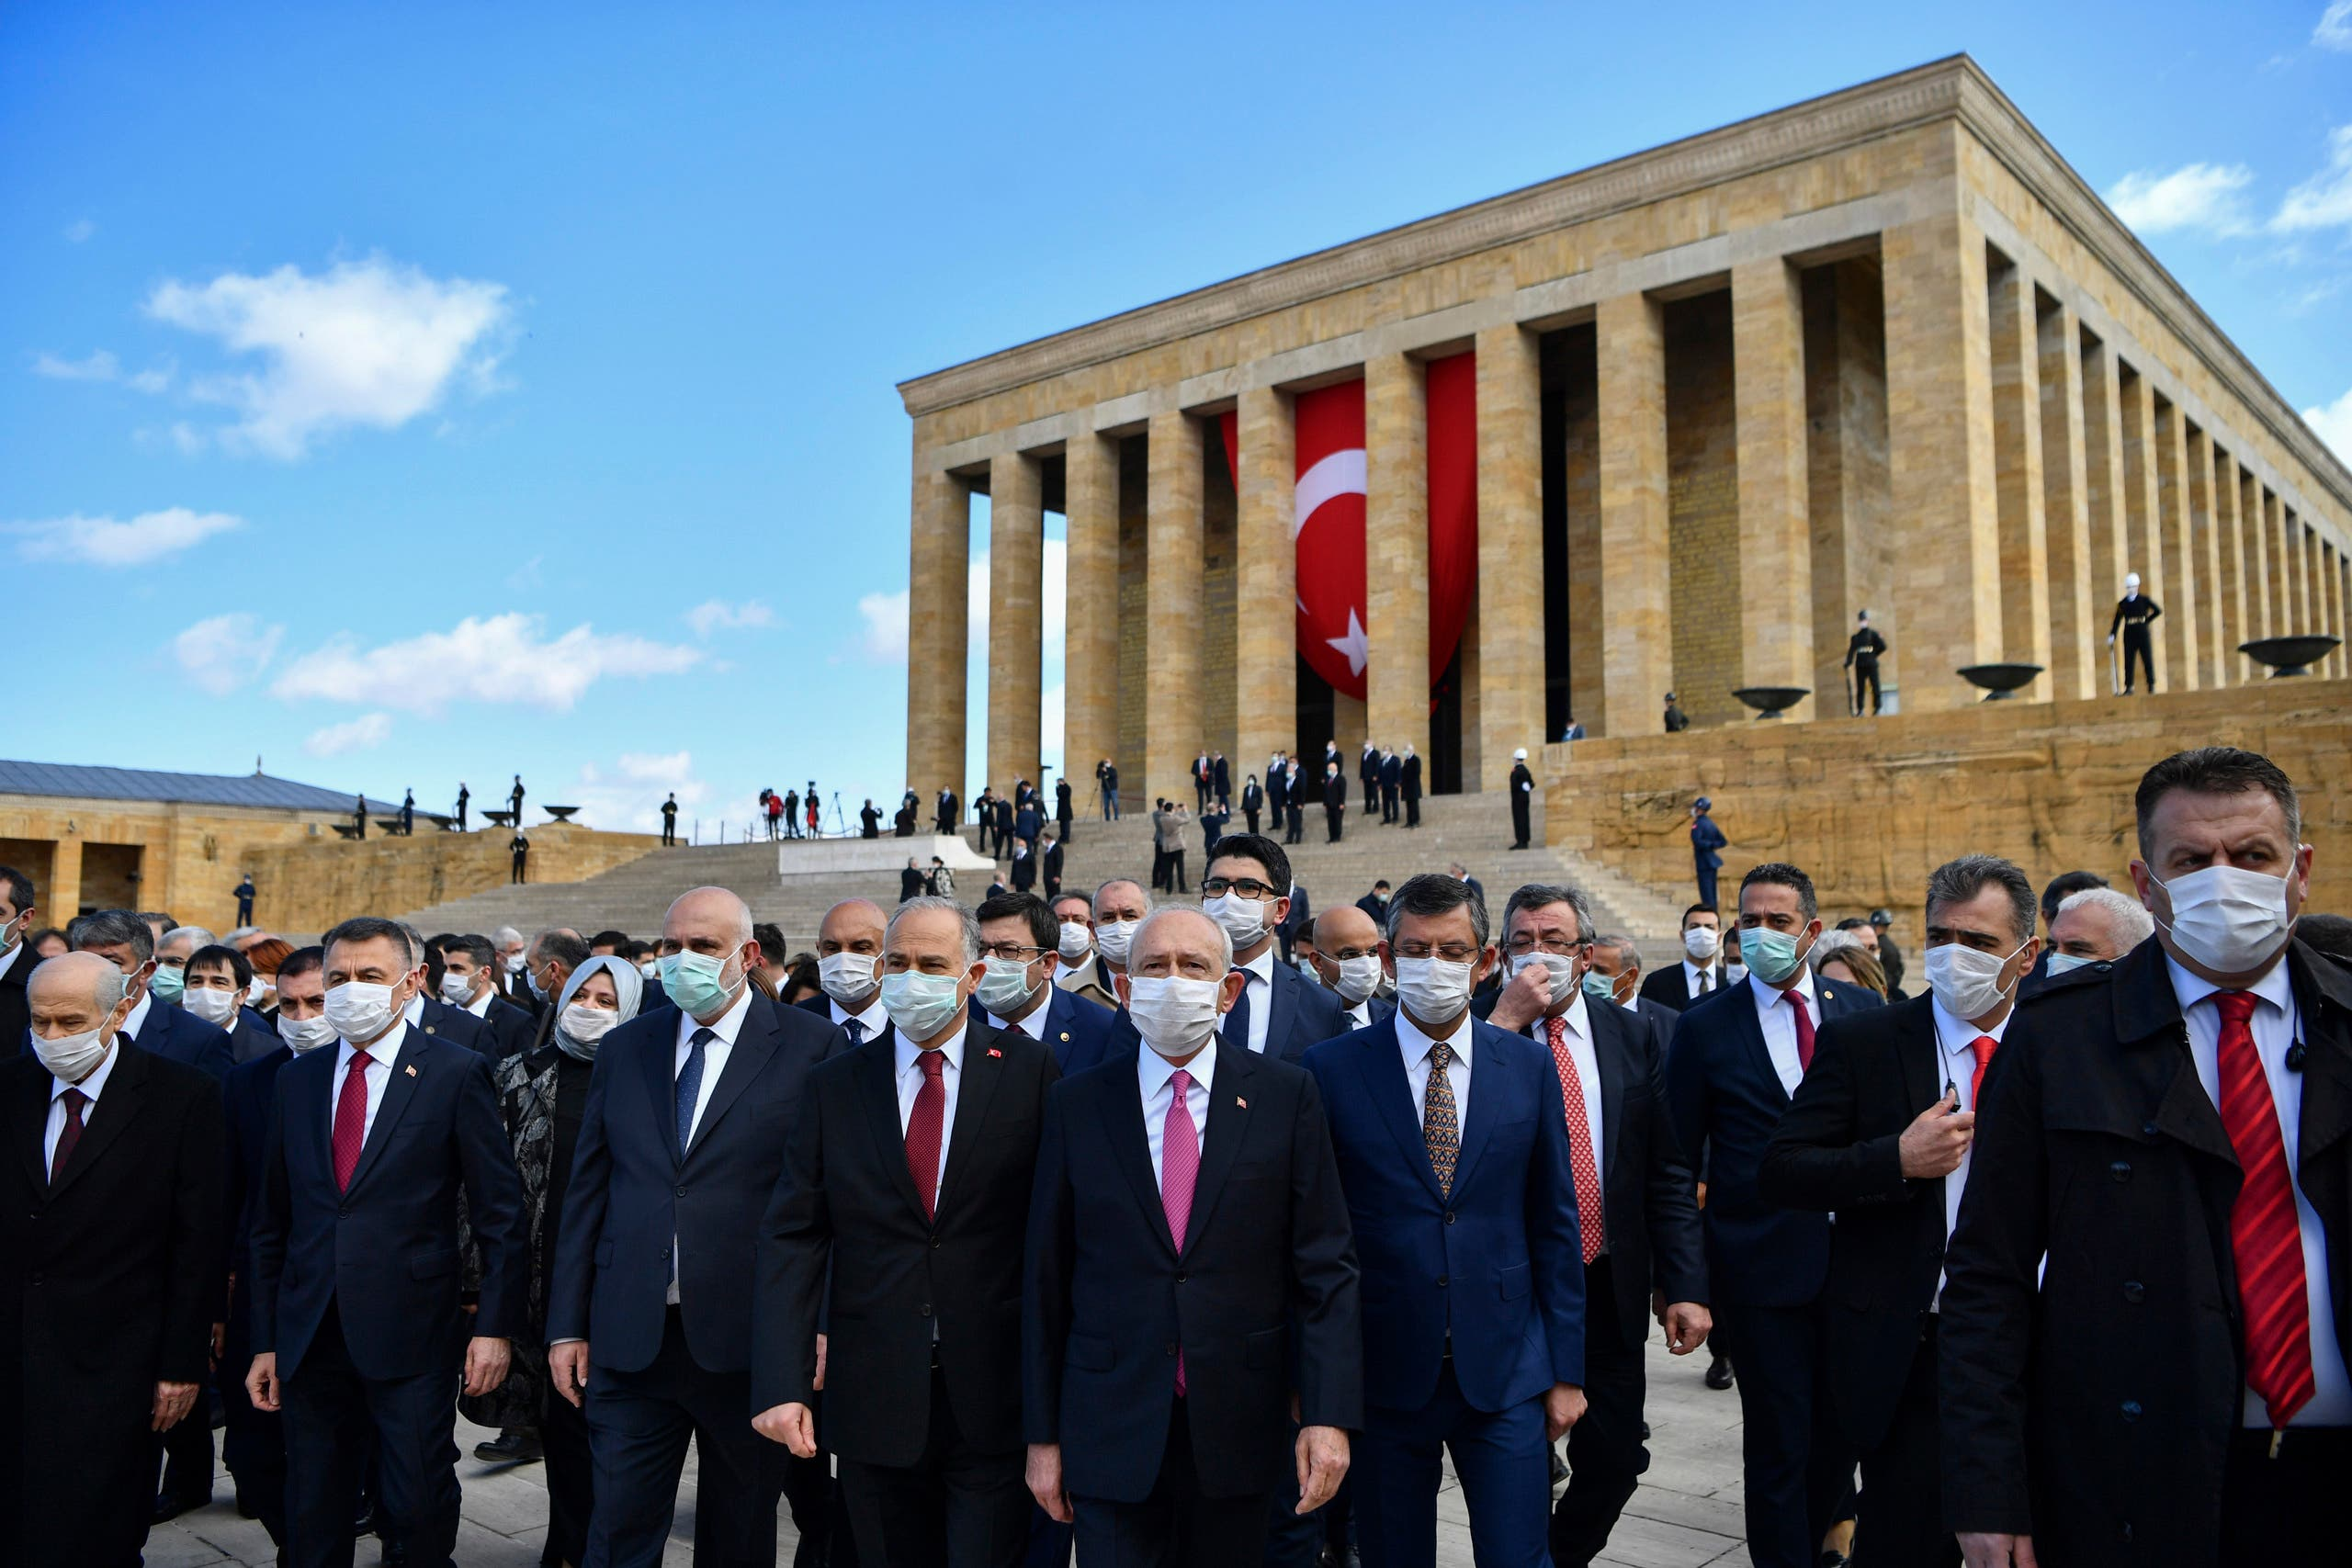 Turkish parliamentarians wearing face masks visit the mausoleum of Turkey's founder Mustafa Kemal Ataturk during a ceremony marking centennial celebrations for the founding of the Turkish parliament, which is also National Sovereignty and Children's Day, in Ankara, Turkey, on Thursday, April 23, 2020. (AP)